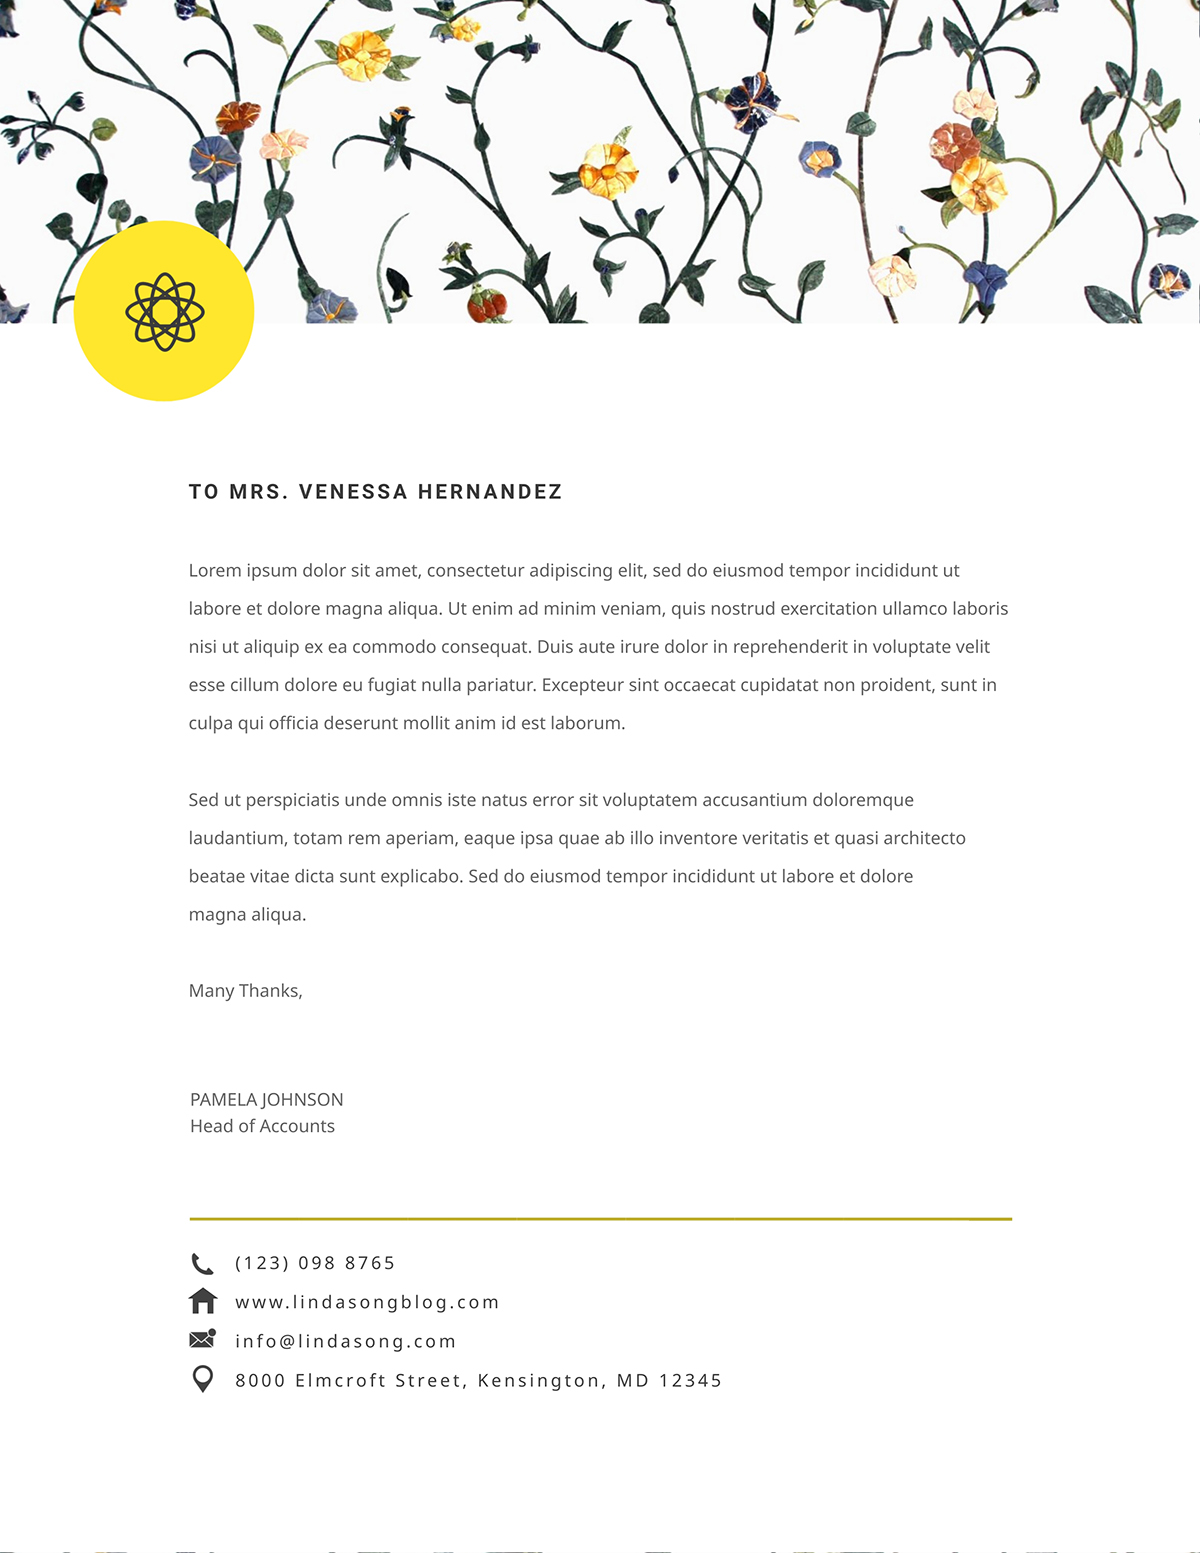 A floral personal letterhead template available to customize in Visme.